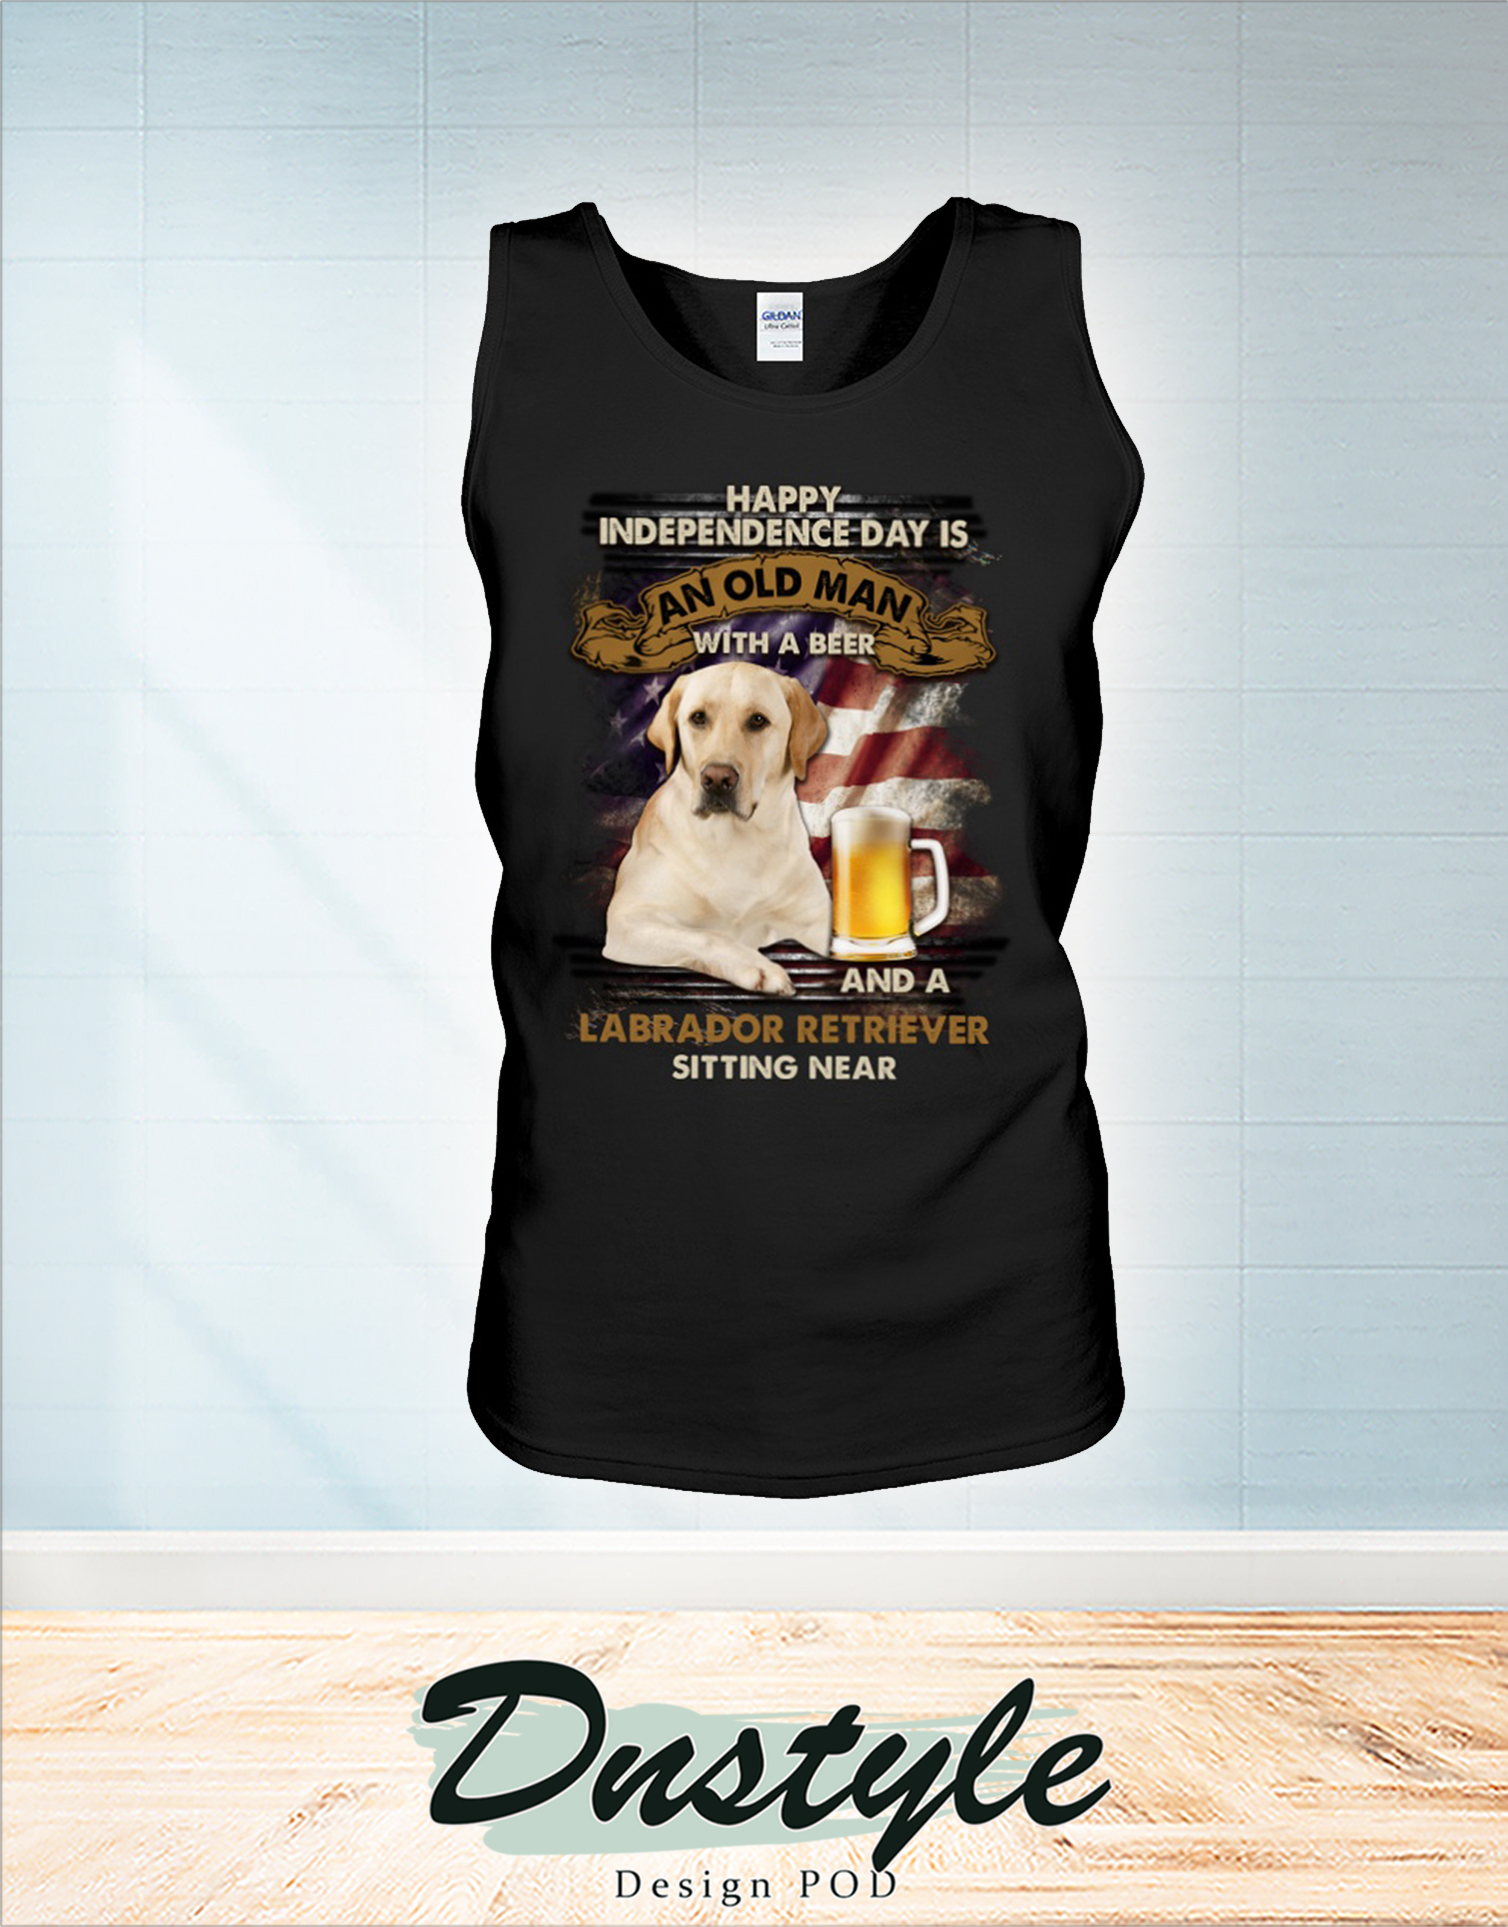 Happy independence day is an old man with a beer and a Labrador retriever sitting near tank